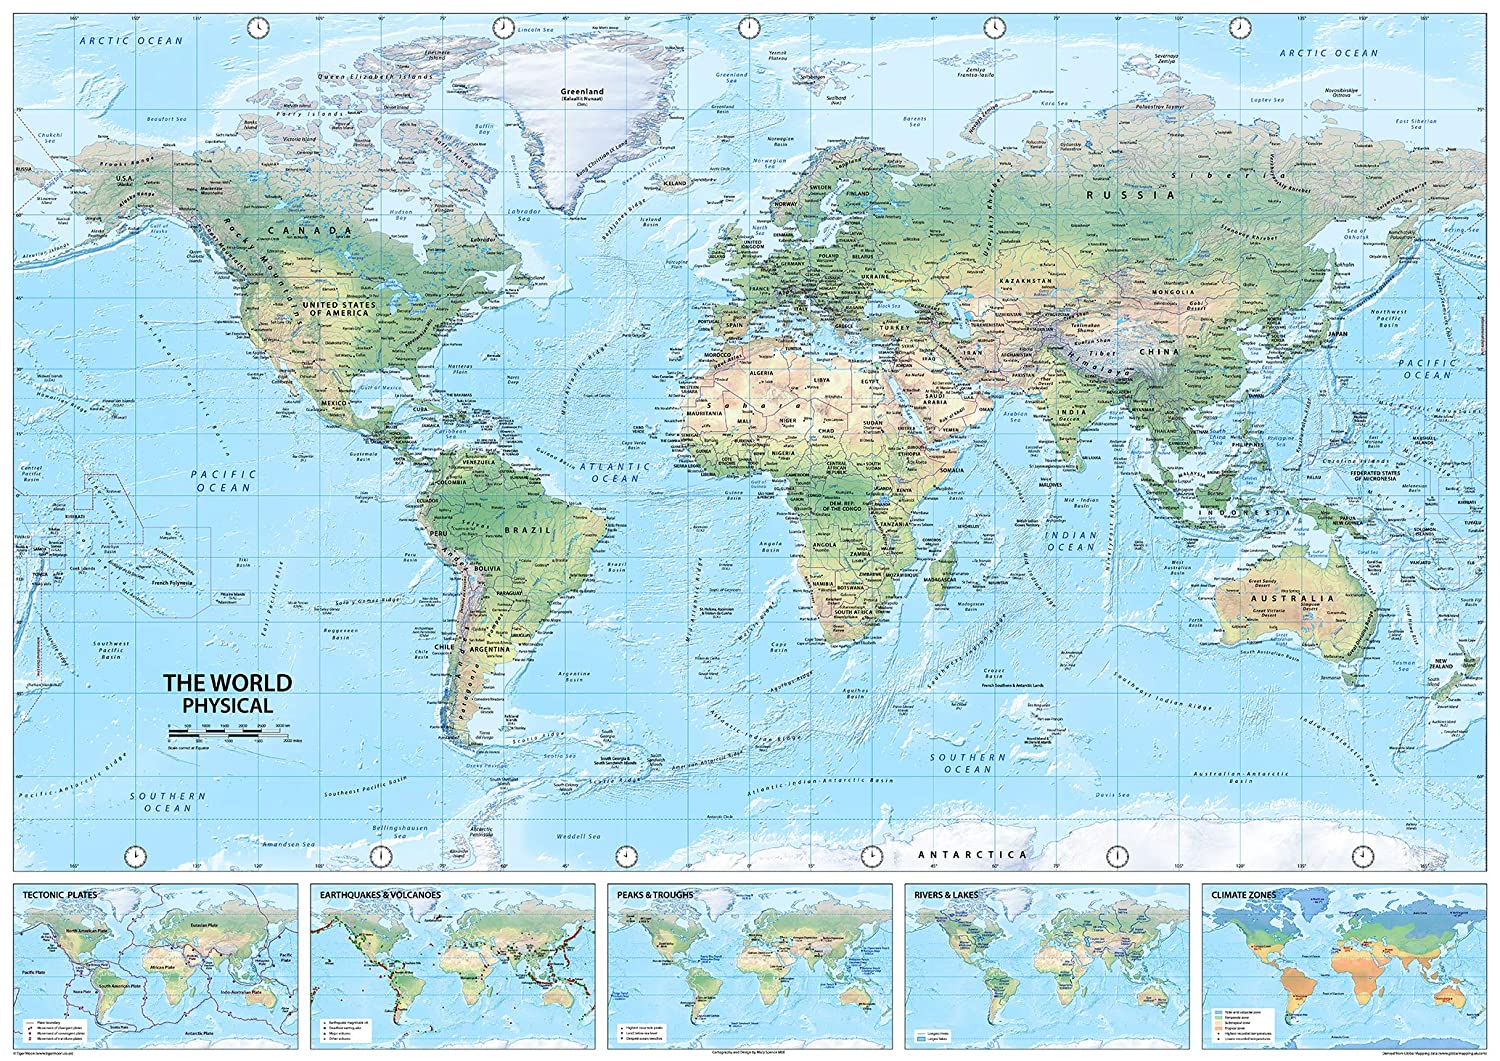 I Love Maps World Physical Map - Paper Laminated A0 Giant Size! GA